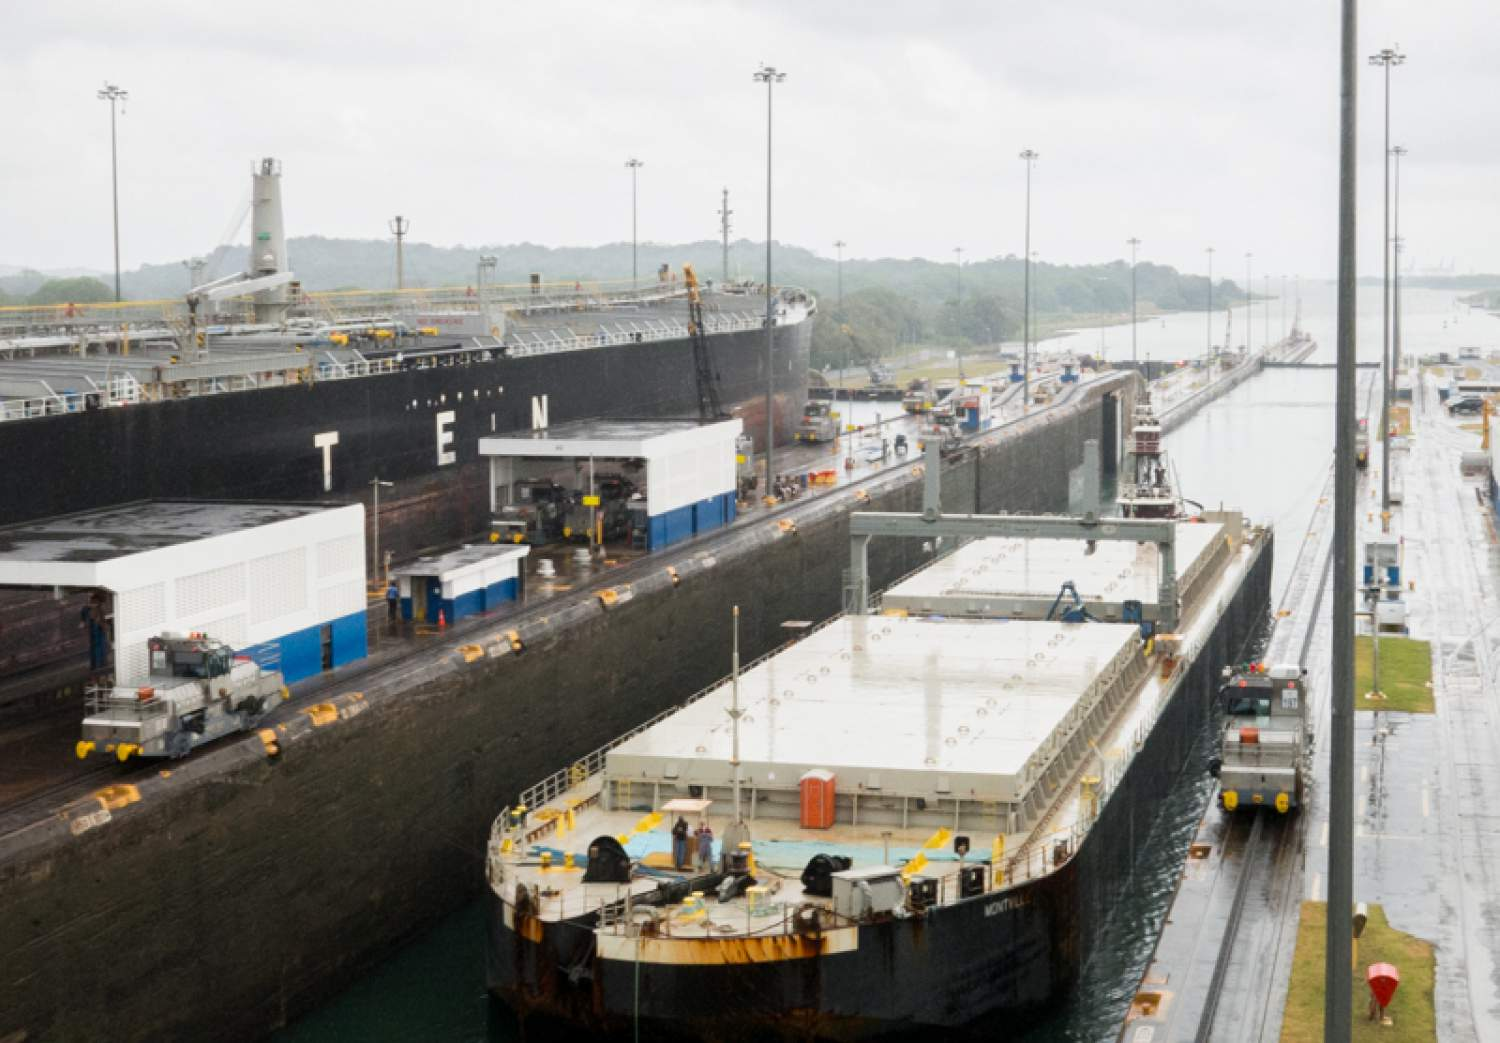 Boat in the locks at the Panama Canal